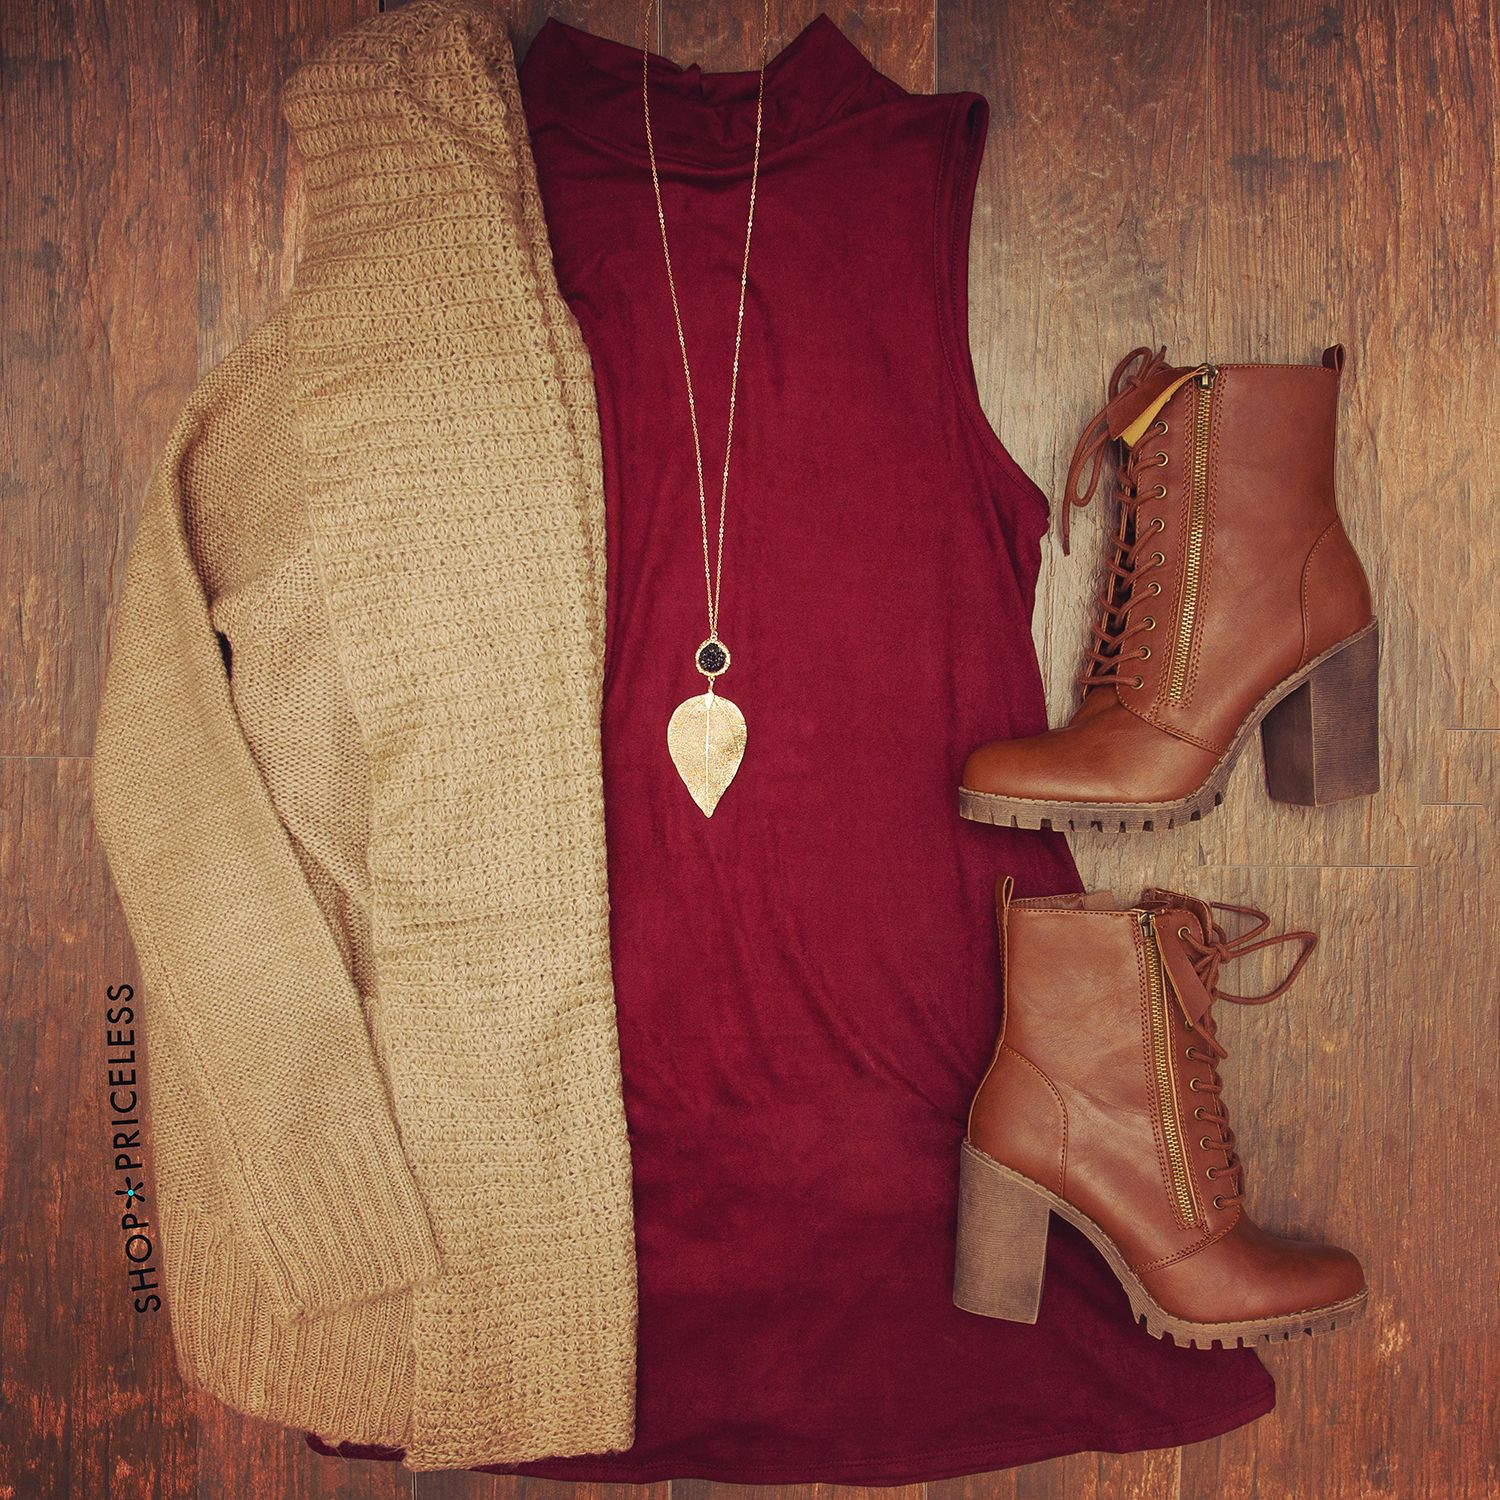 Noelle Knit Cardigan - Taupe